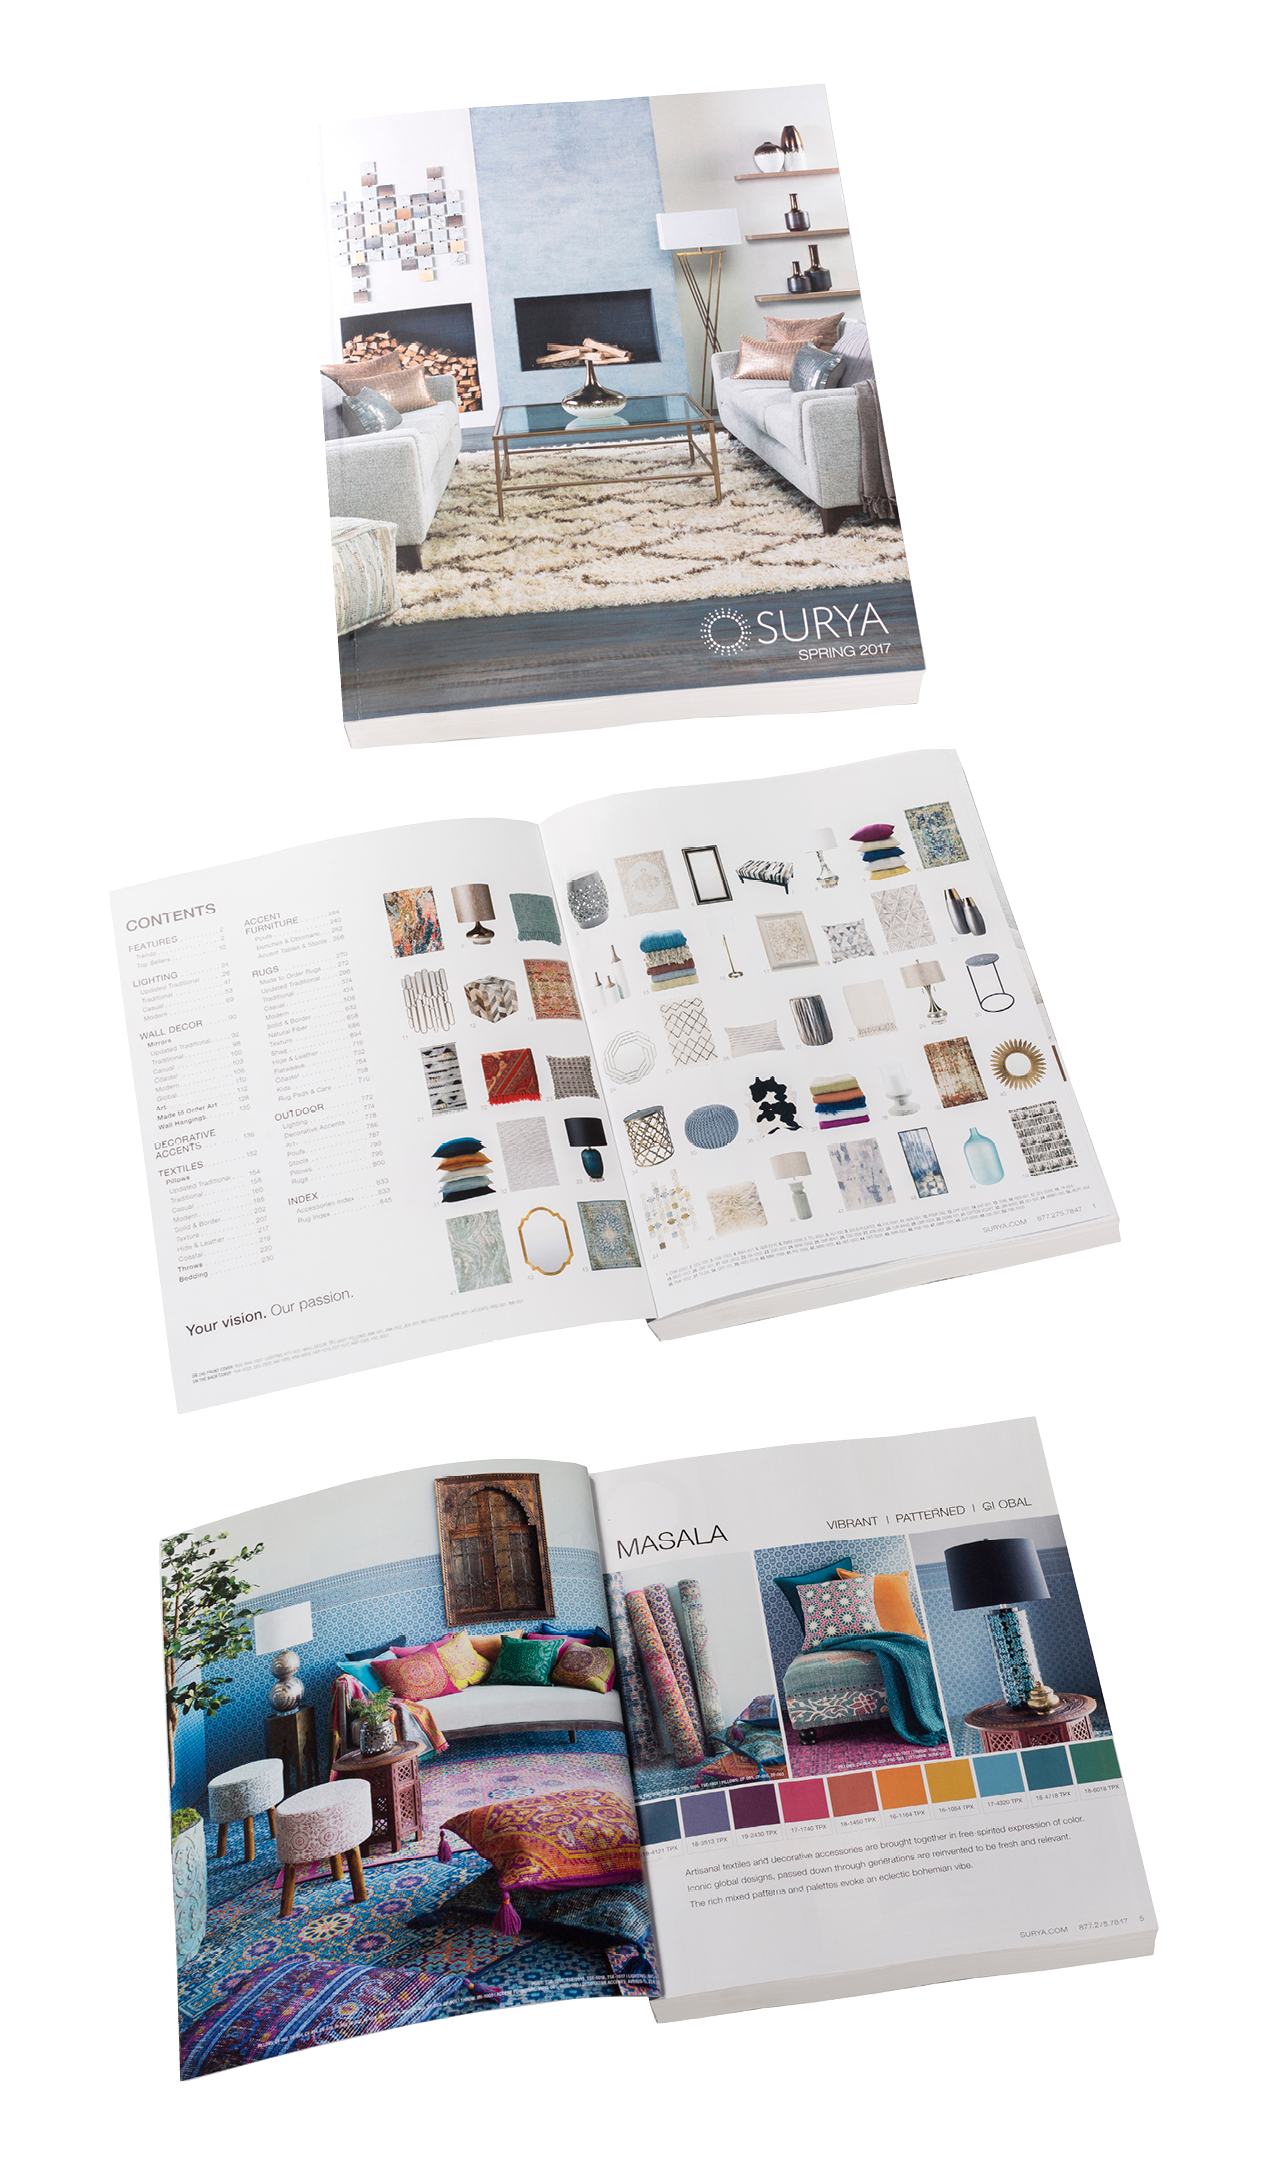 The catalog opens with four decor trends elegant and textural achromatic vibrant and worldly masala muted and structural origami and colorfully modern